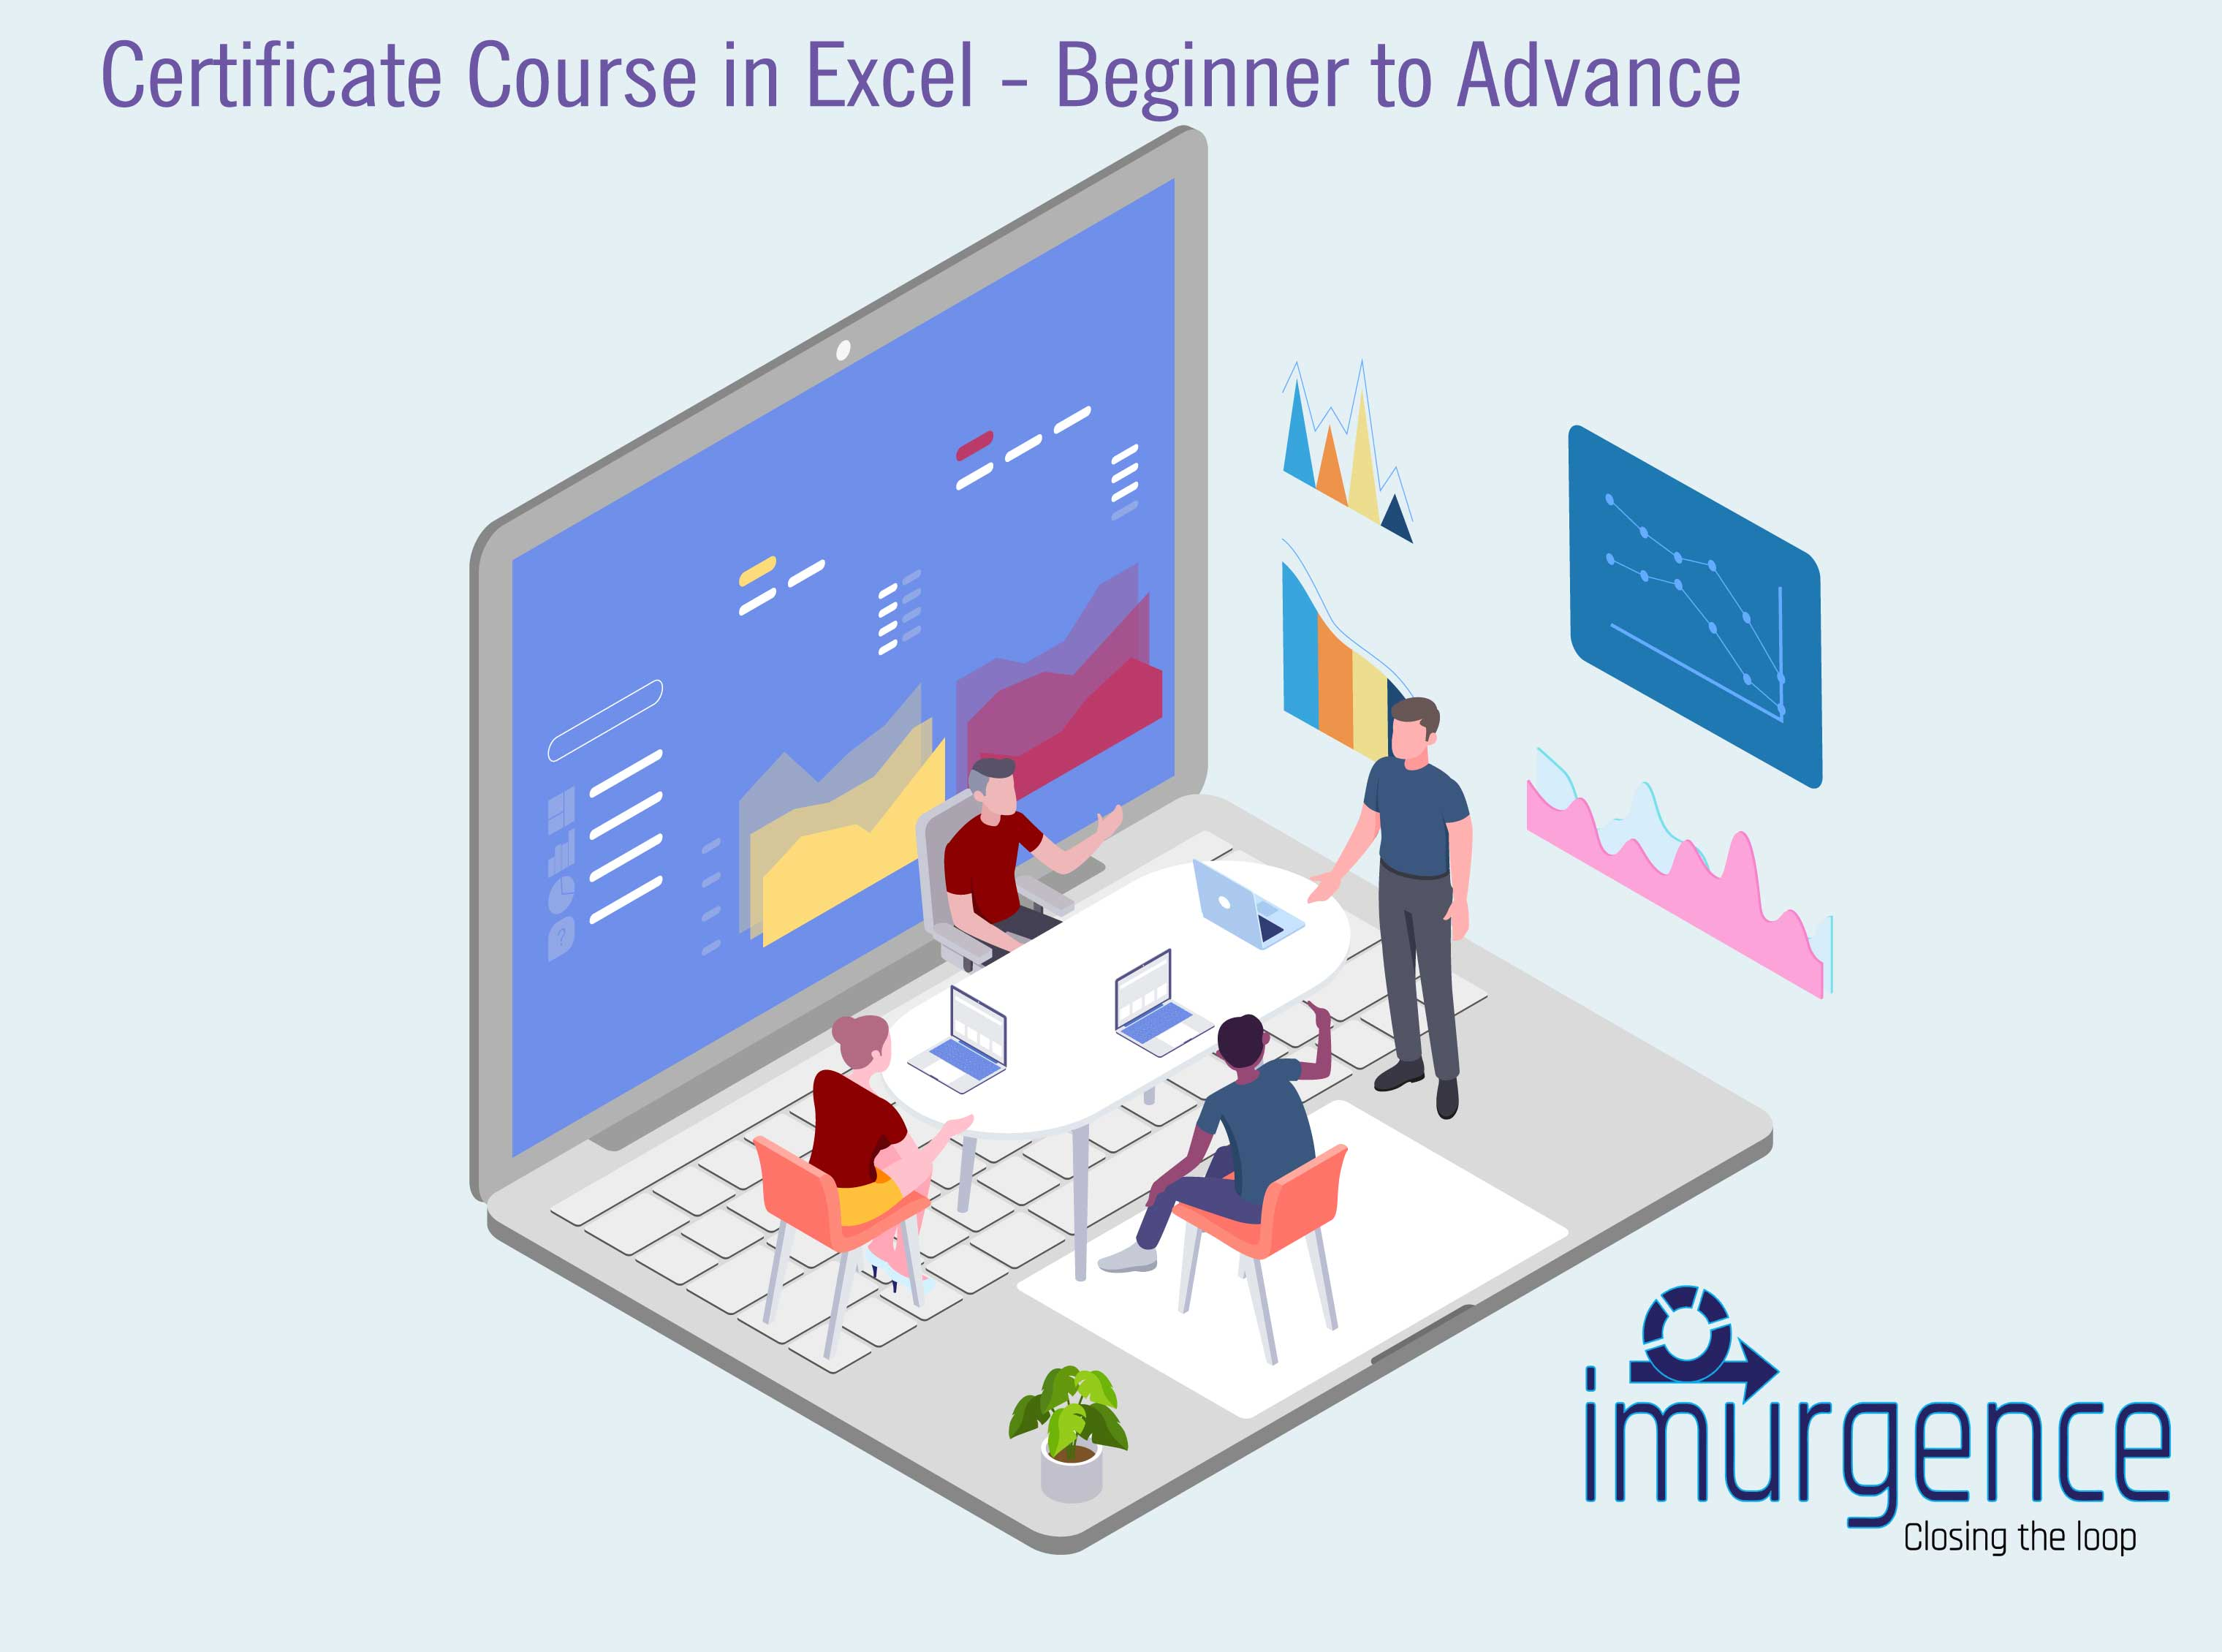 Certificate Course in Excel